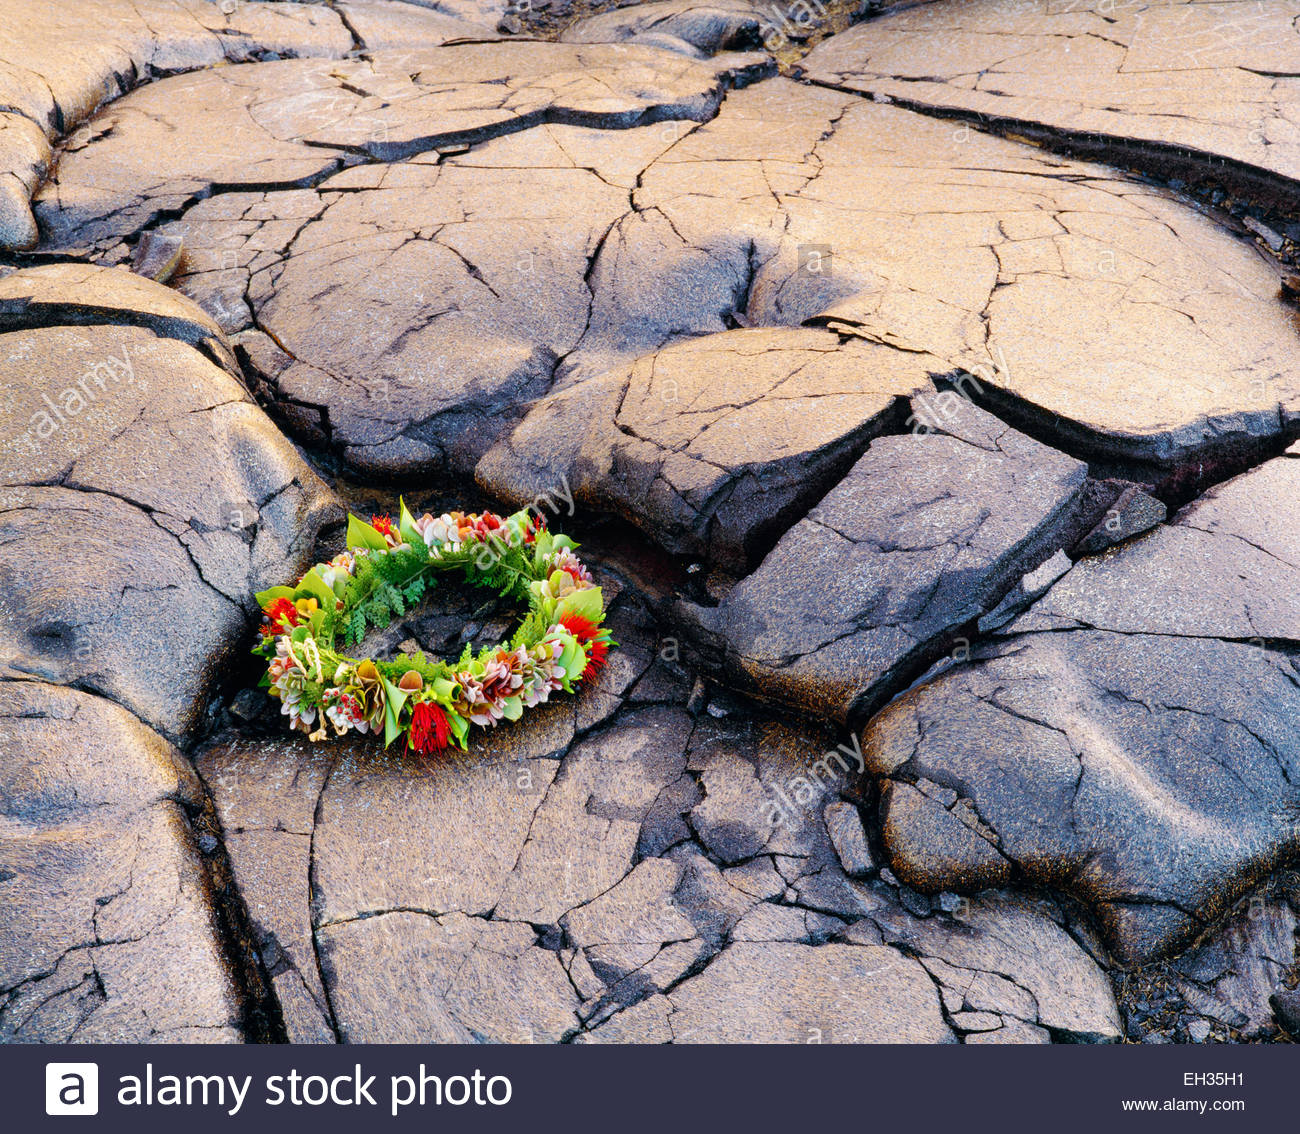 0801-1064  Copyright: George H.H. Huey  A sacred lei made with seven native plants.  Hawaii Volcanoes National Park, - Stock Image